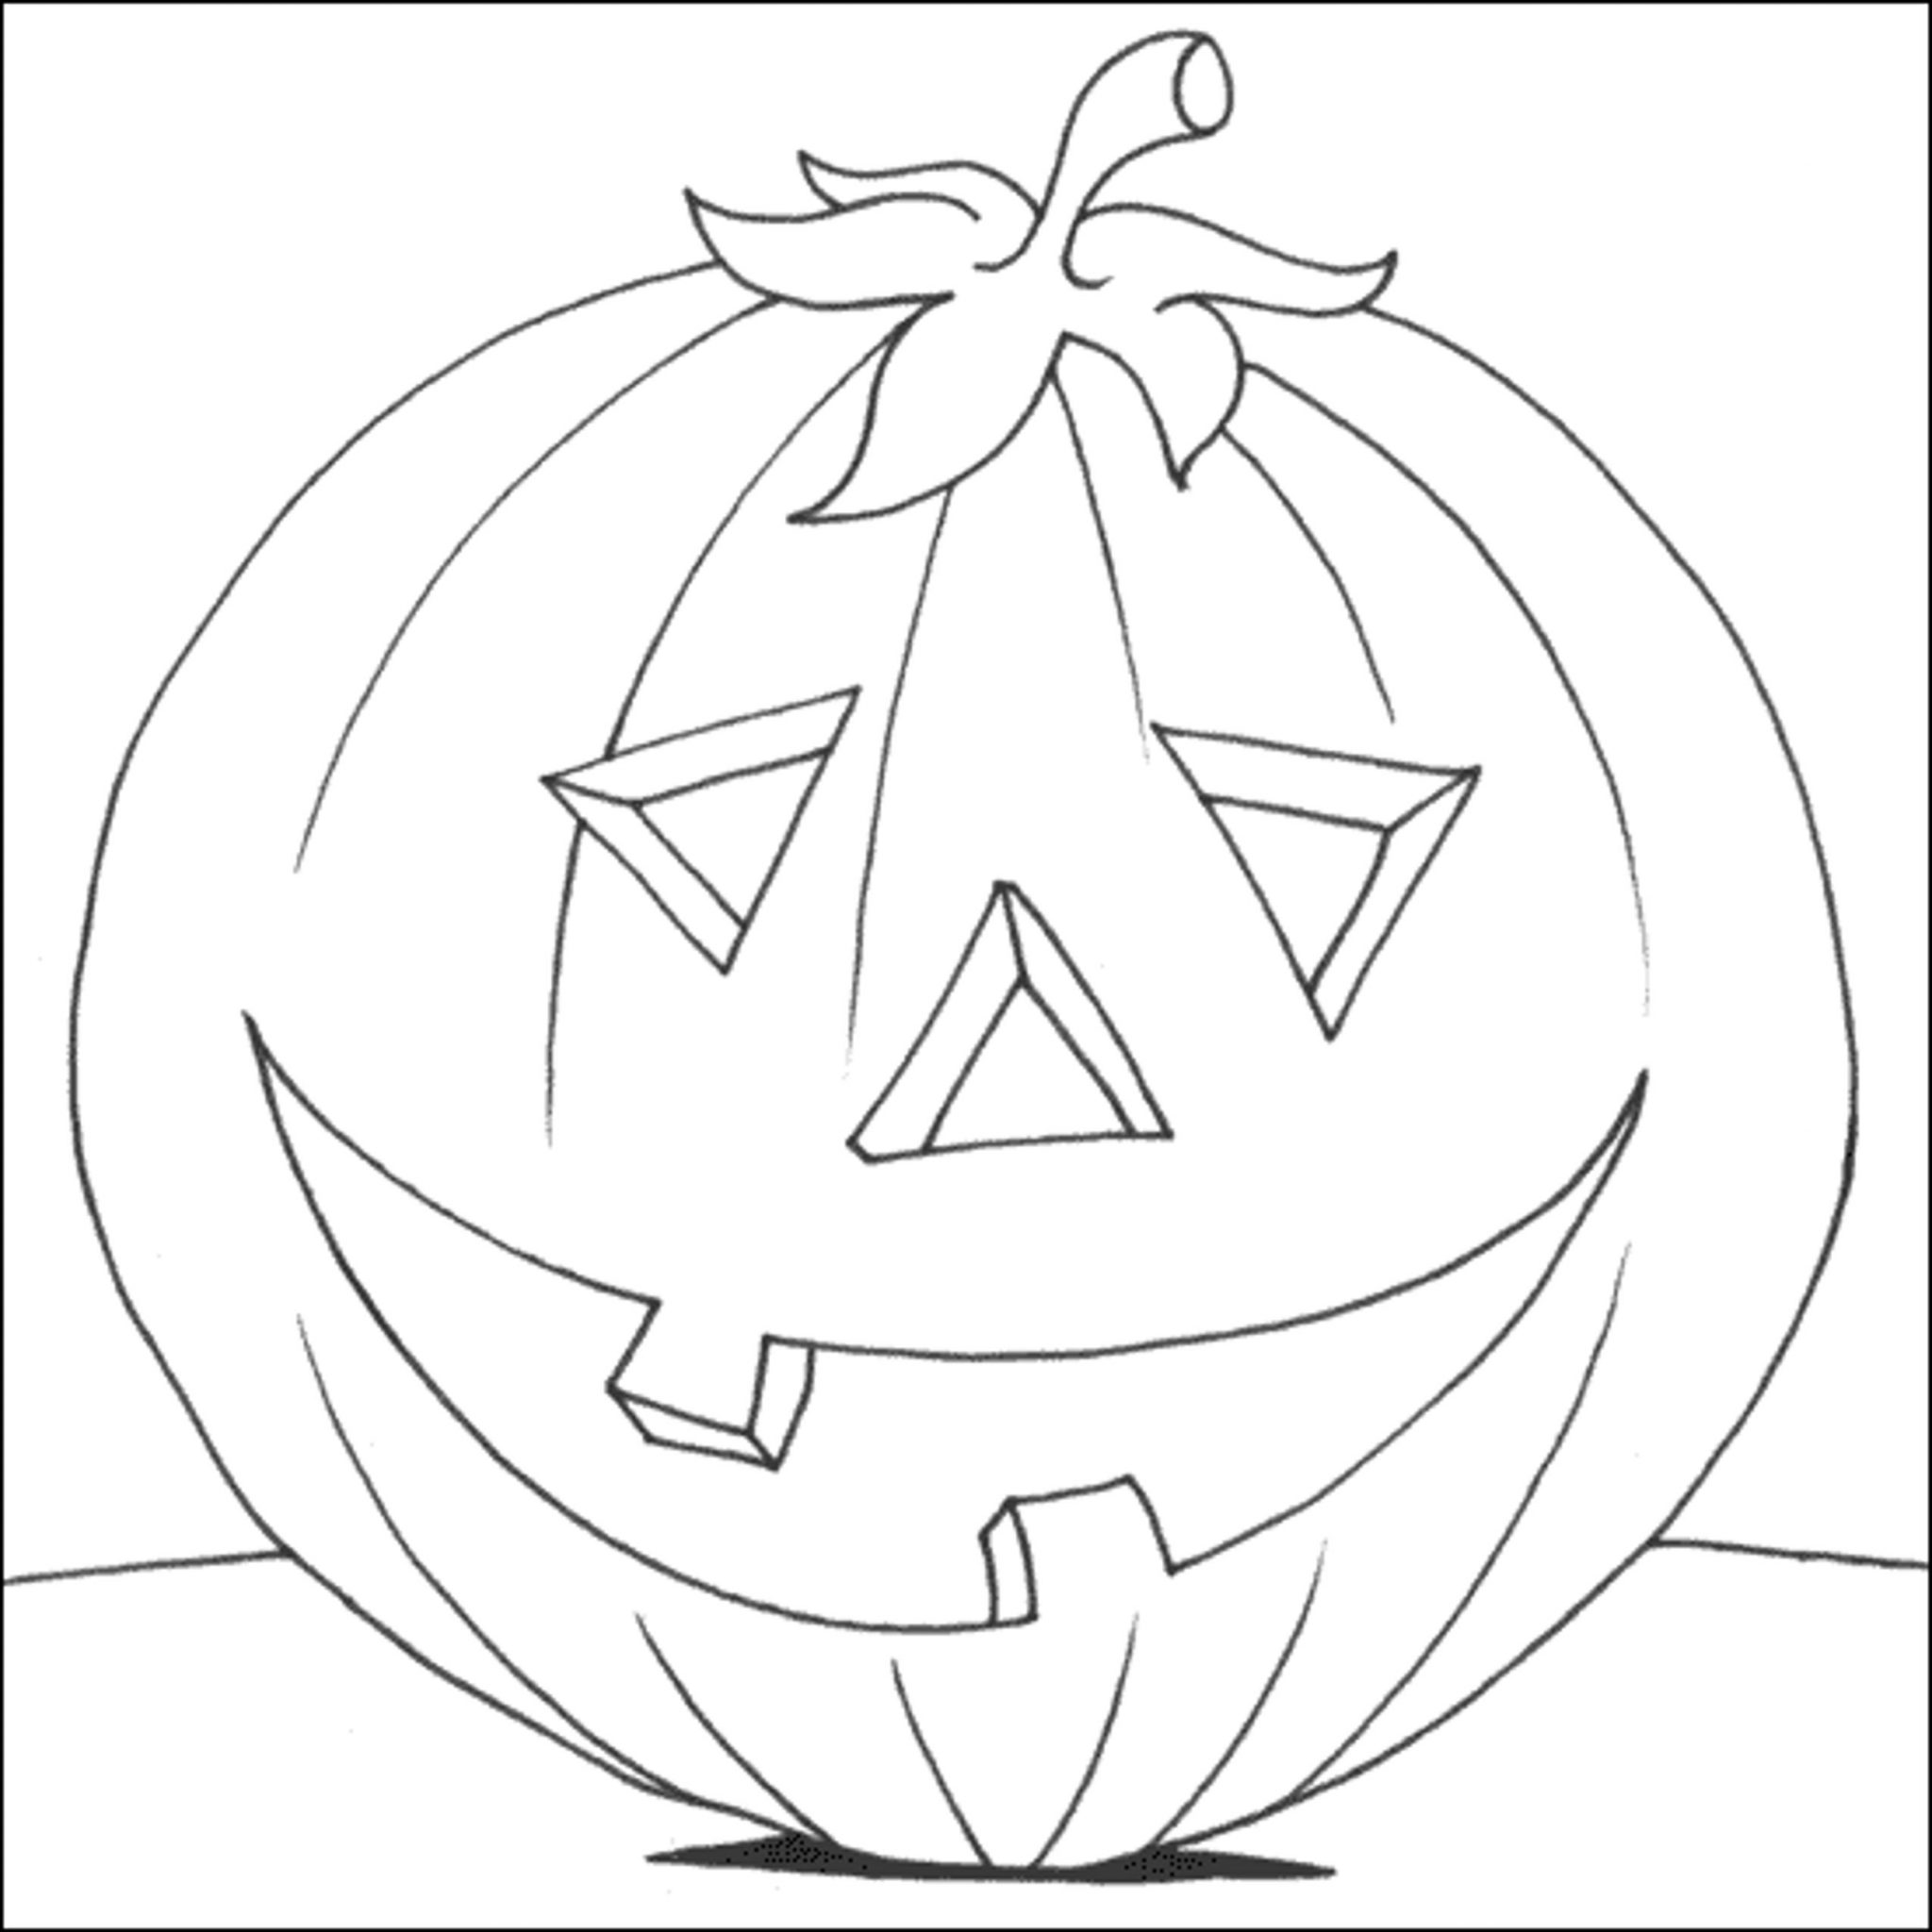 pumpkin colouring page print download pumpkin coloring pages and benefits of pumpkin page colouring 1 1